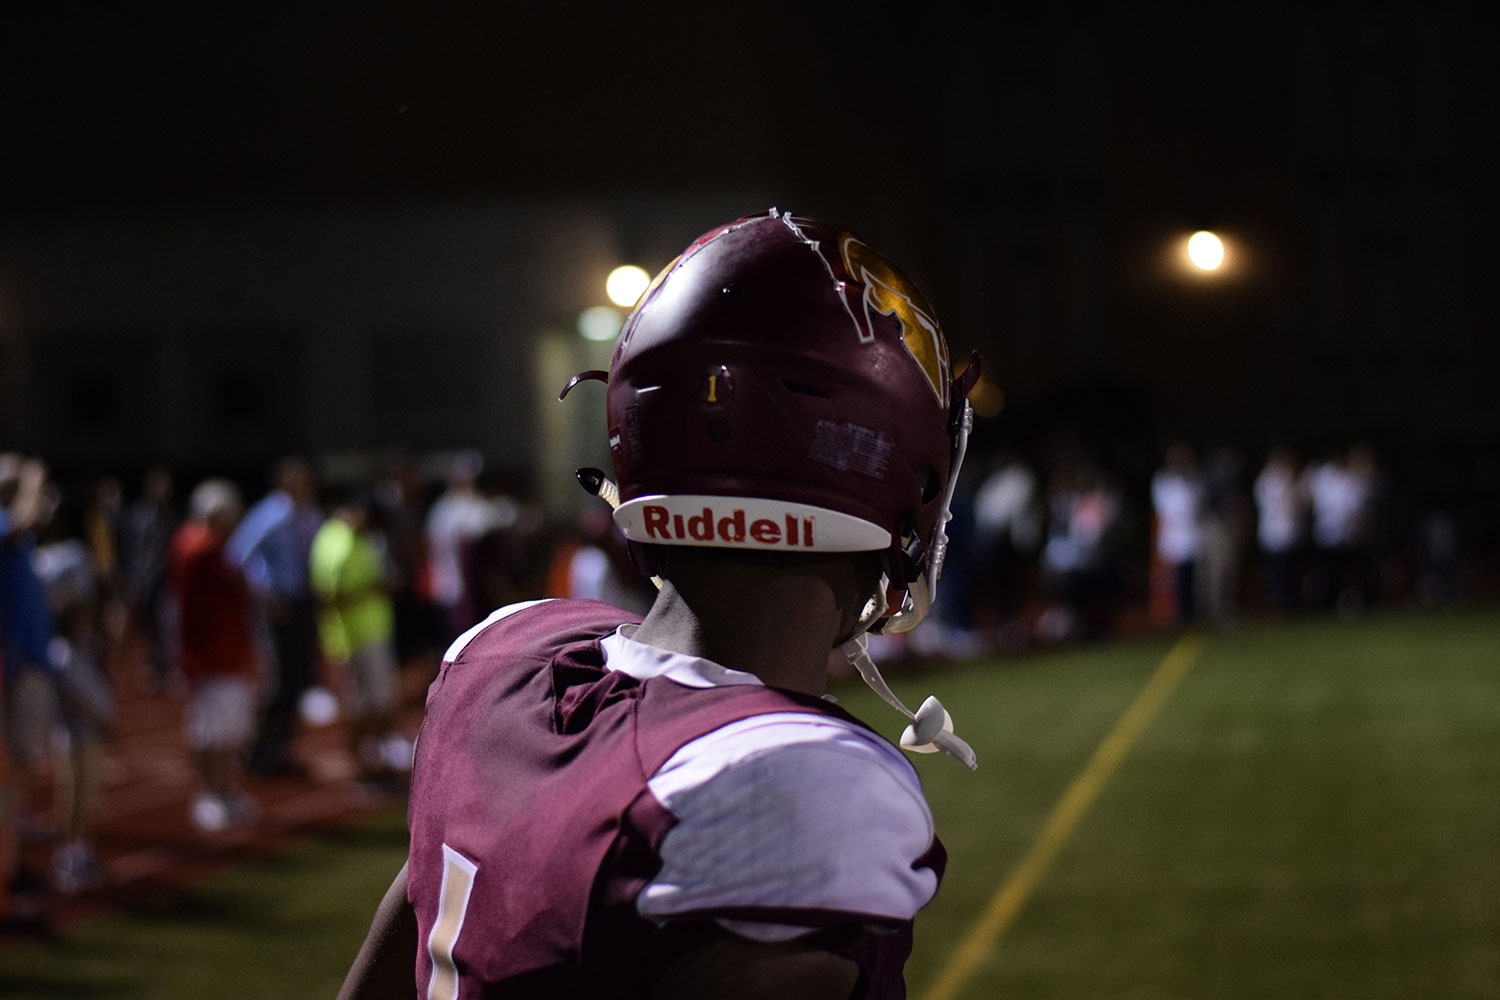 Junior Jordan Johnson looks onto the field versus Hazelwood Central on Aug. 24.